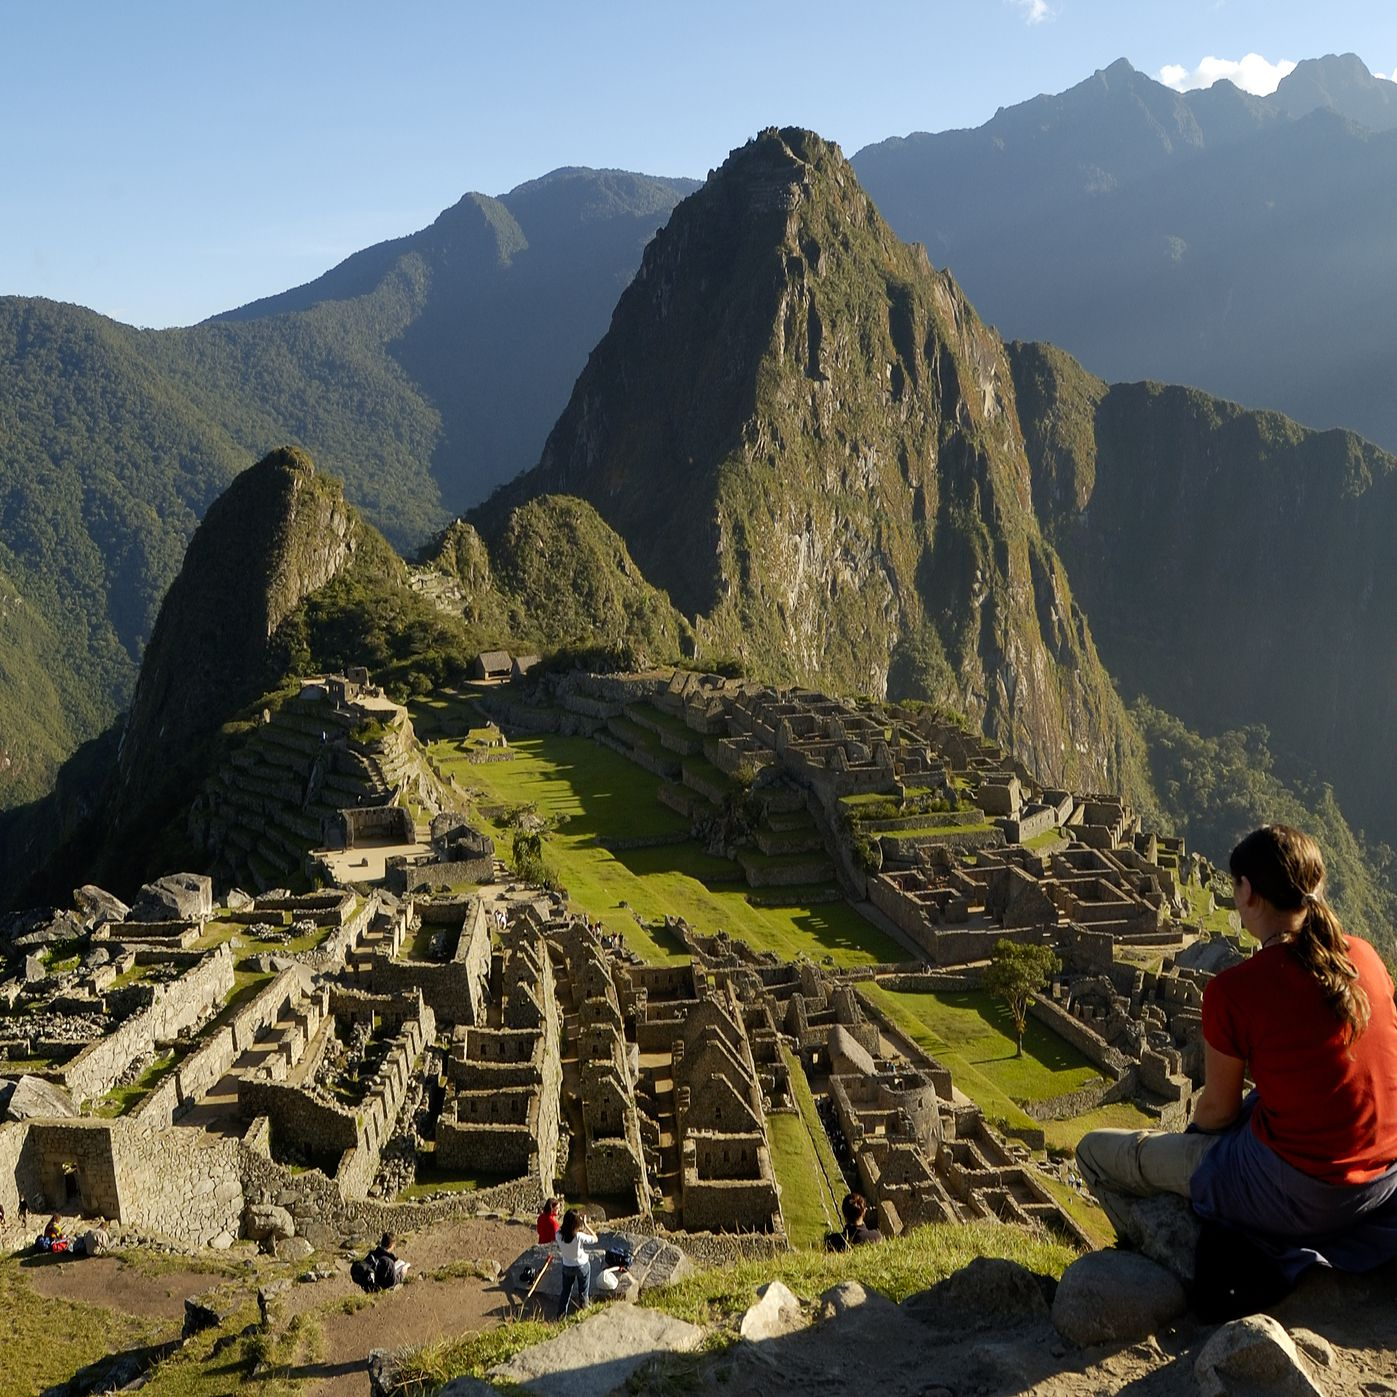 The 8 Best Machu Picchu Tours to Book in 2018